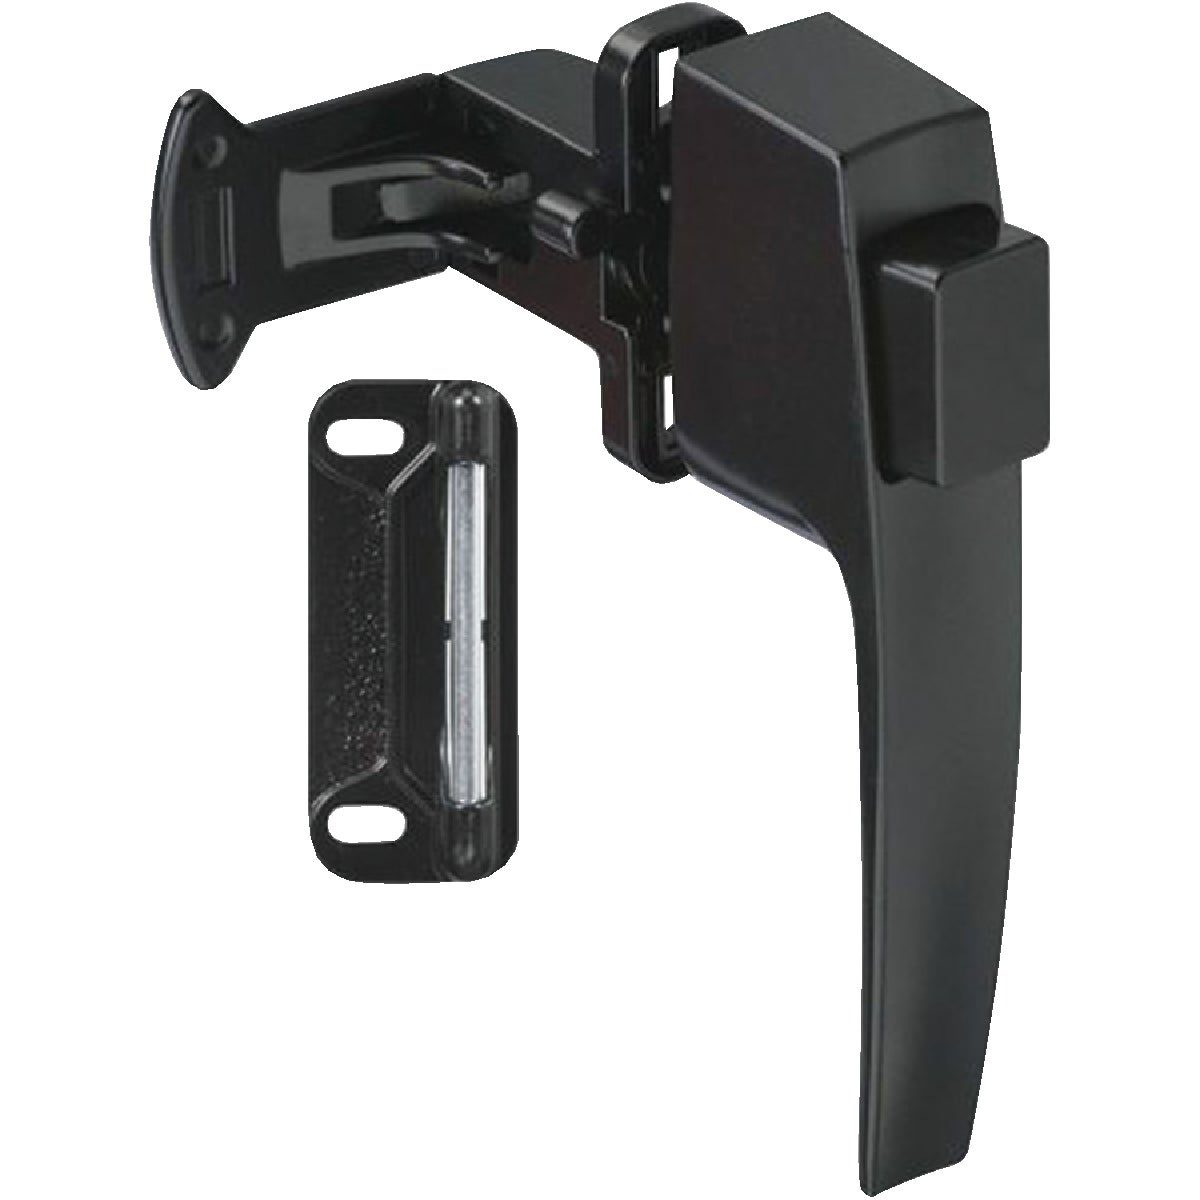 BL PUSH BUTTON LATCH - VF333BL by Hampton Prod Intl